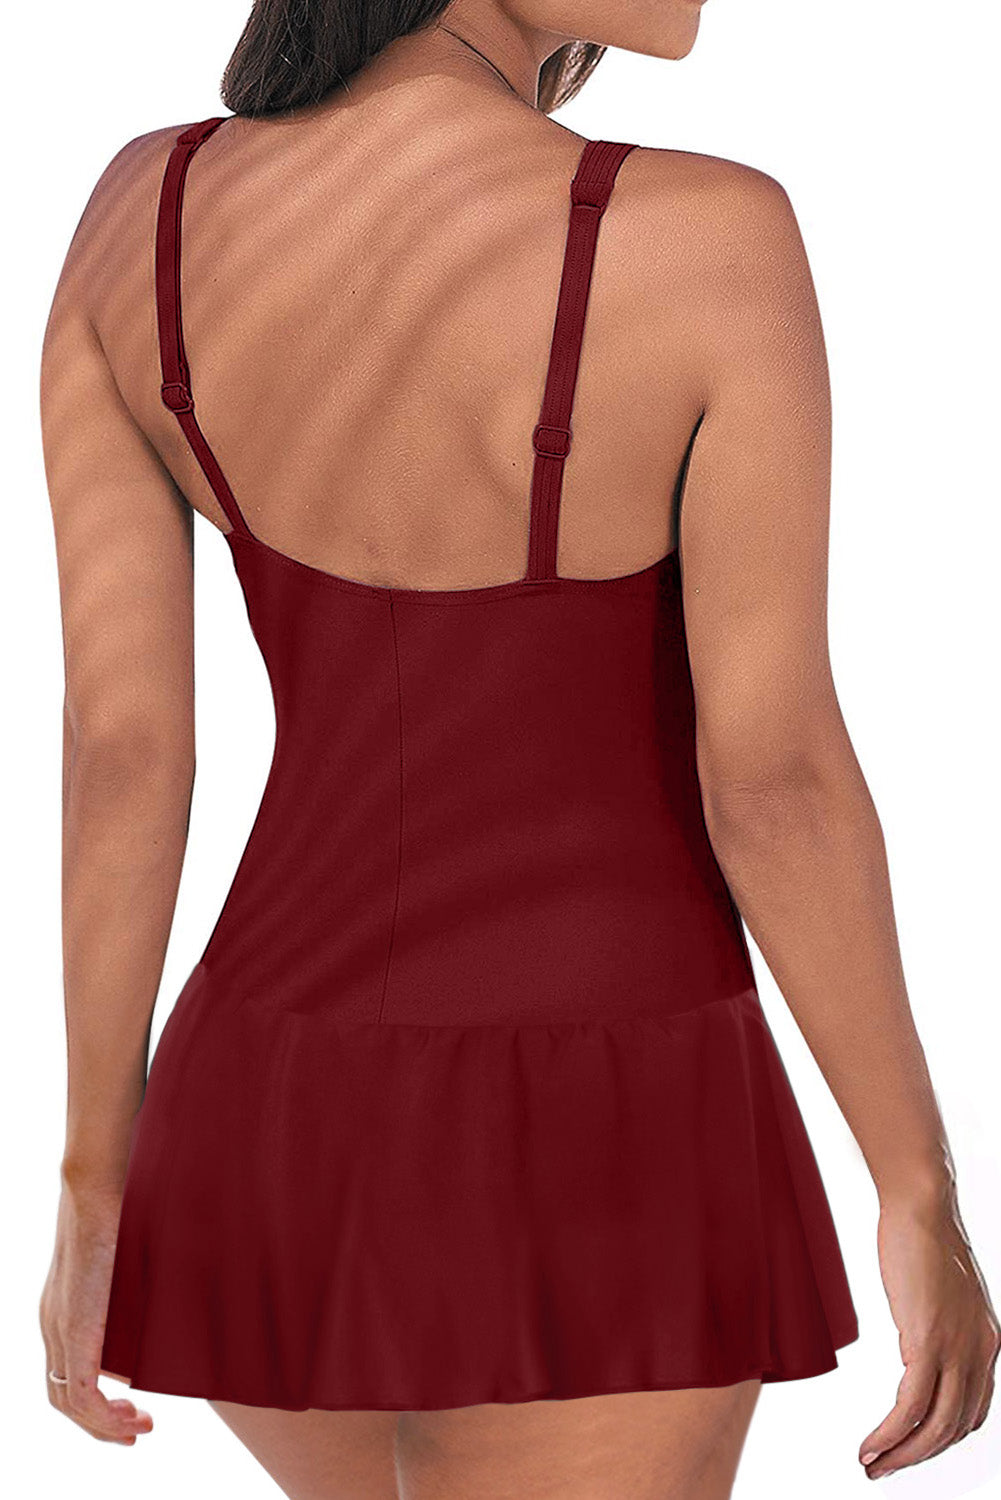 Red Padded Push up One Piece Swimdress